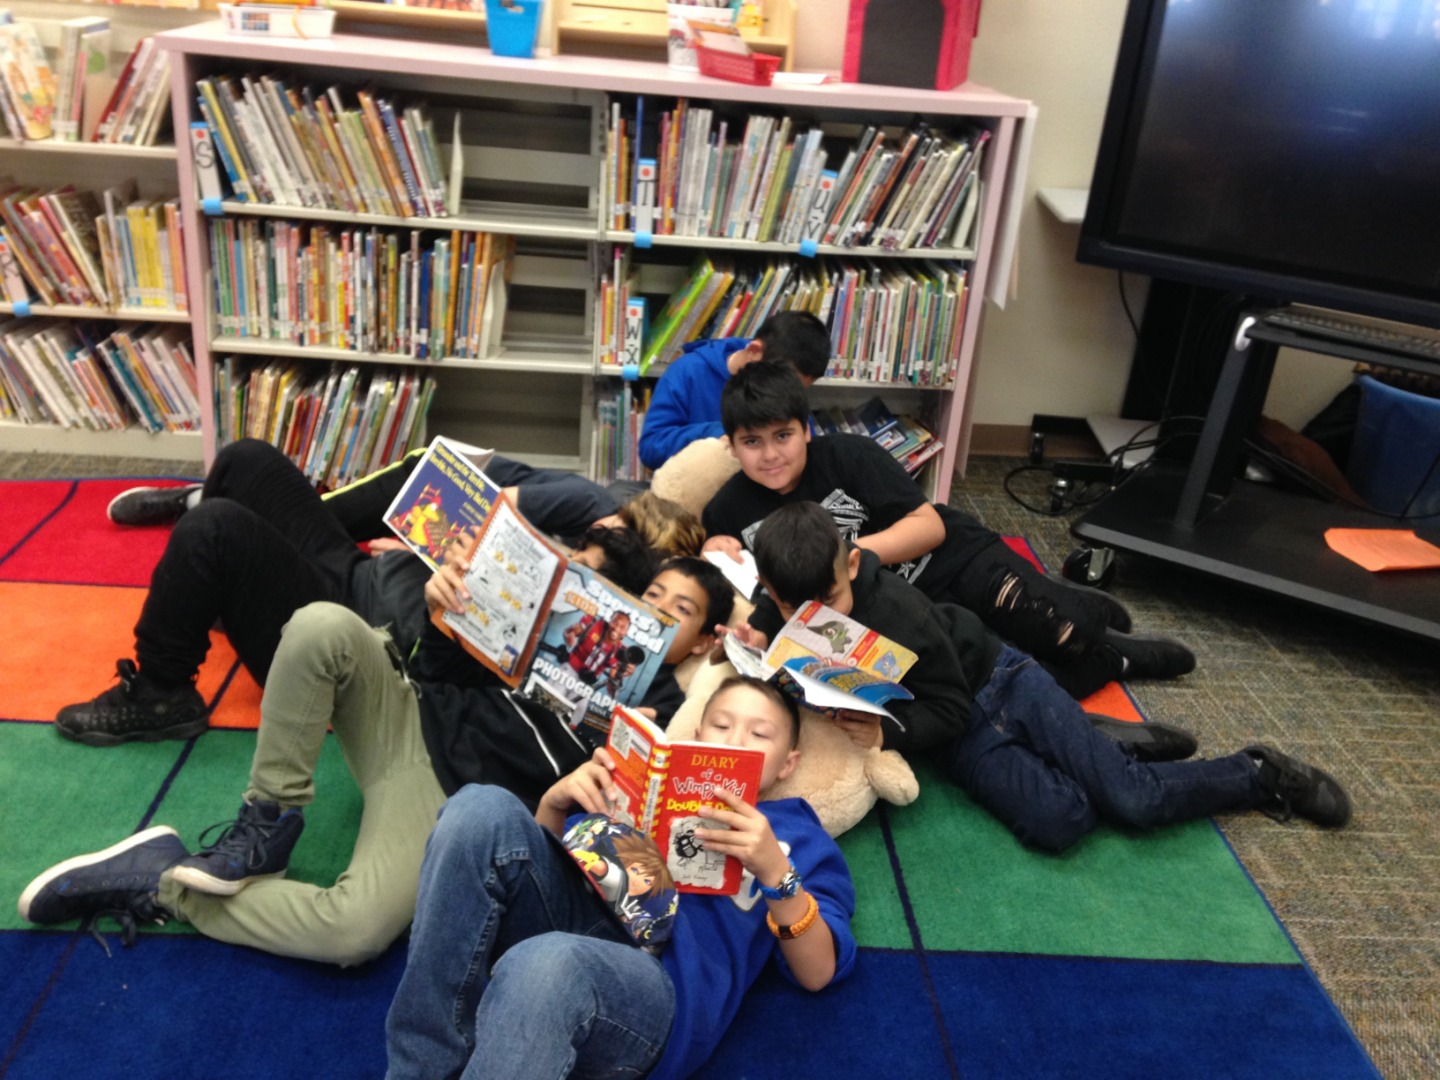 Students laying on the floor reading books